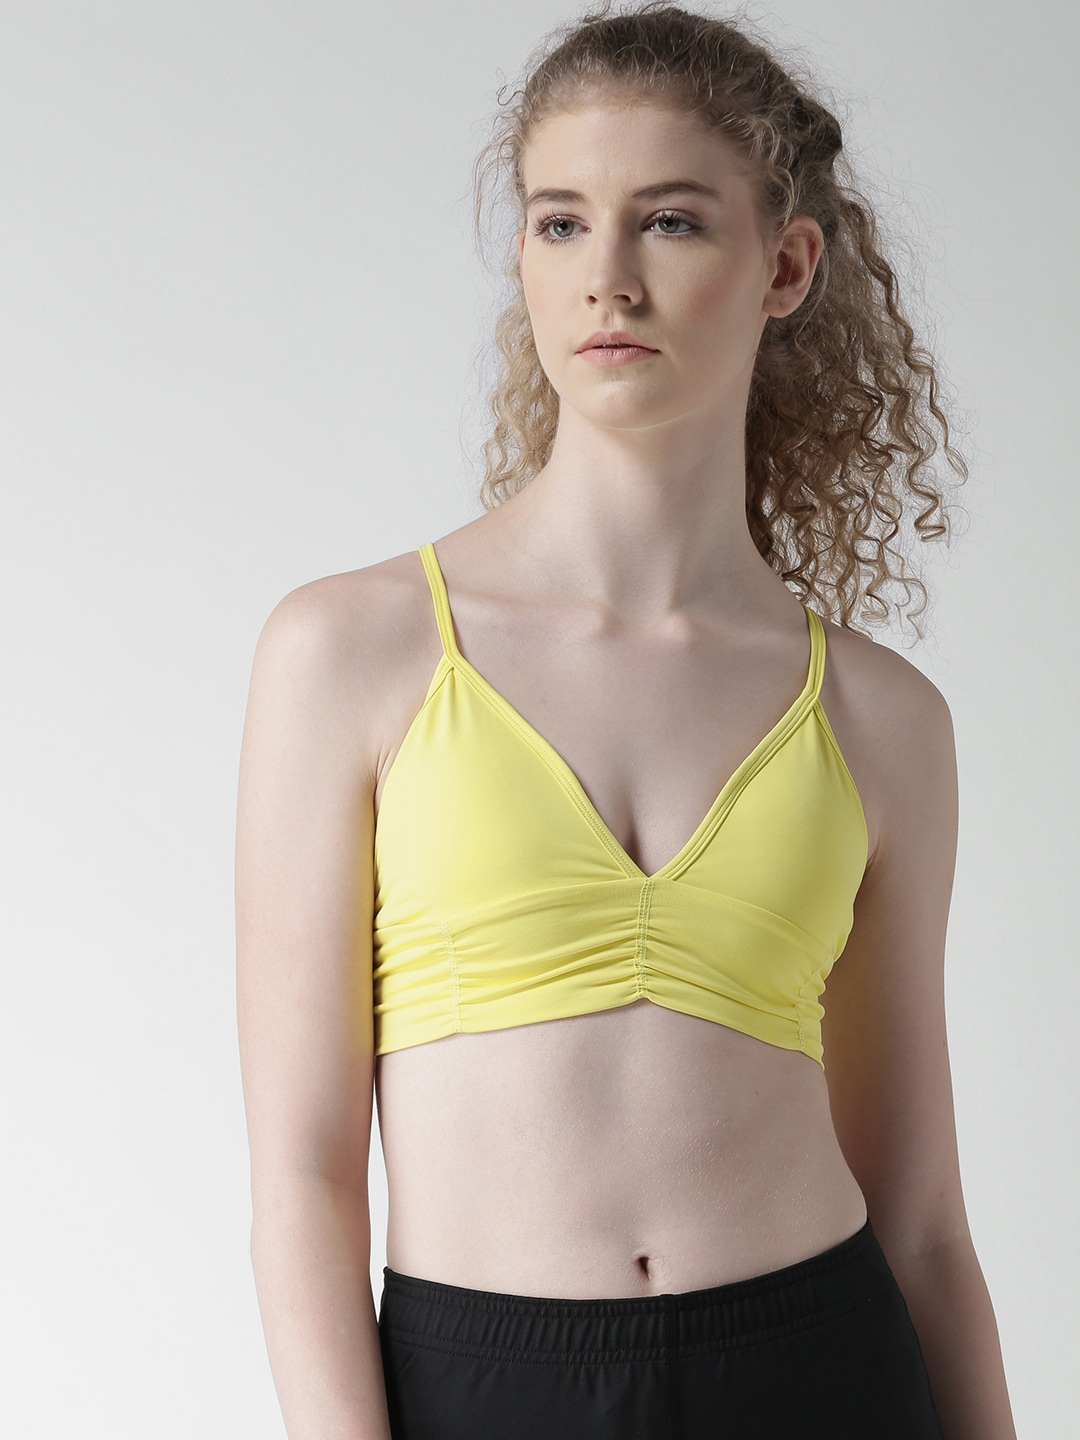 FOREVER 21 Yellow Solid Non-Wired Lightly Padded Sports Bra 205892 image